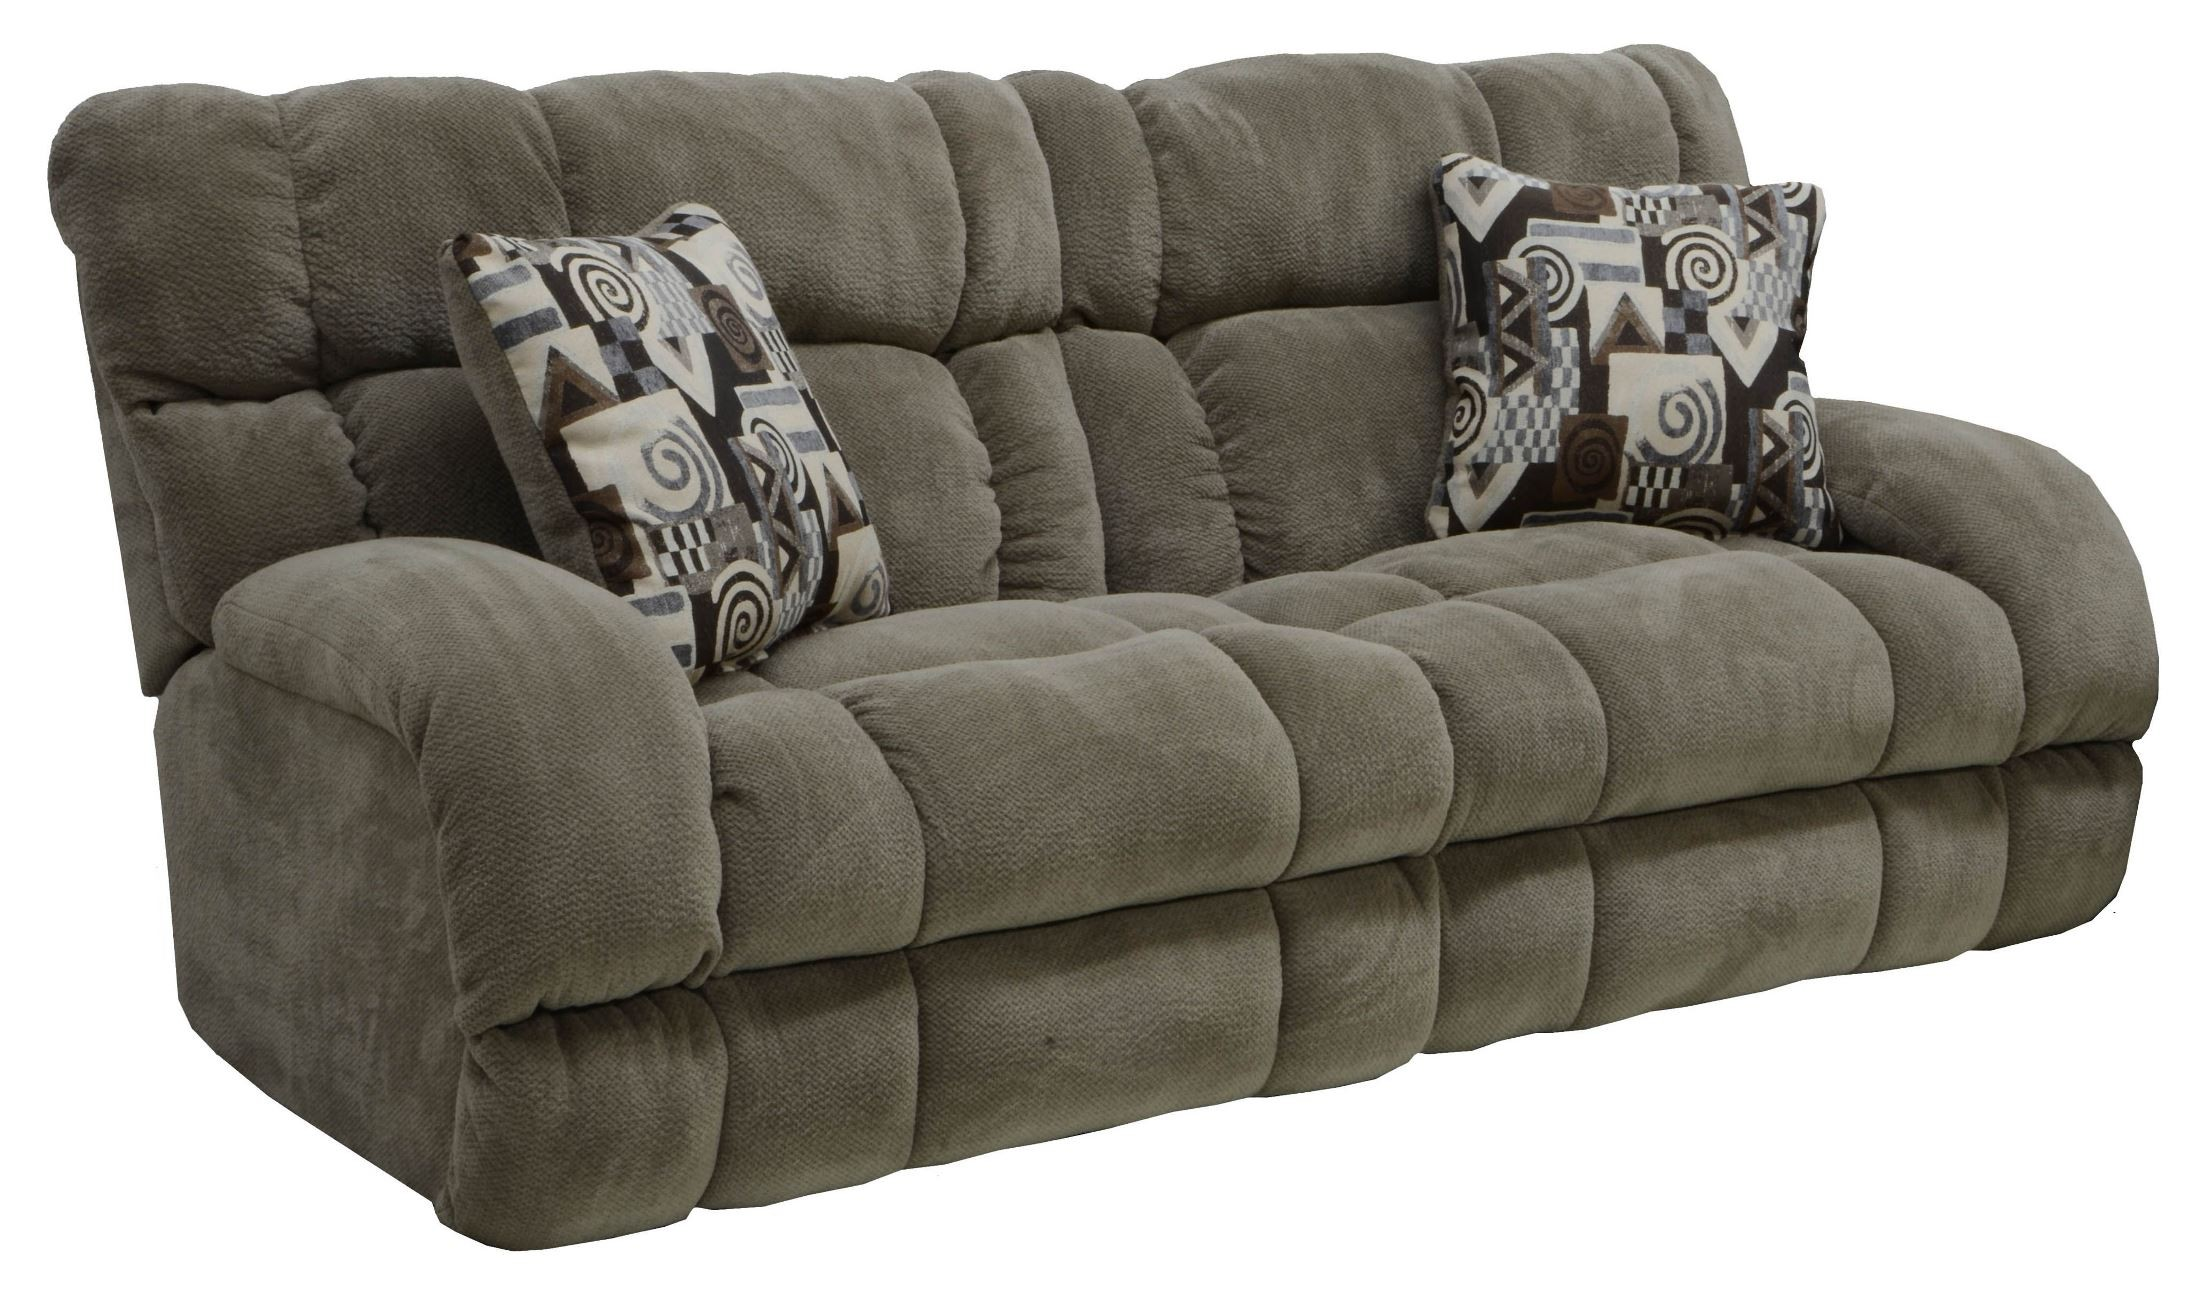 siesta porcini power reclining sofa from catnapper 61761200000000000 coleman furniture. Black Bedroom Furniture Sets. Home Design Ideas